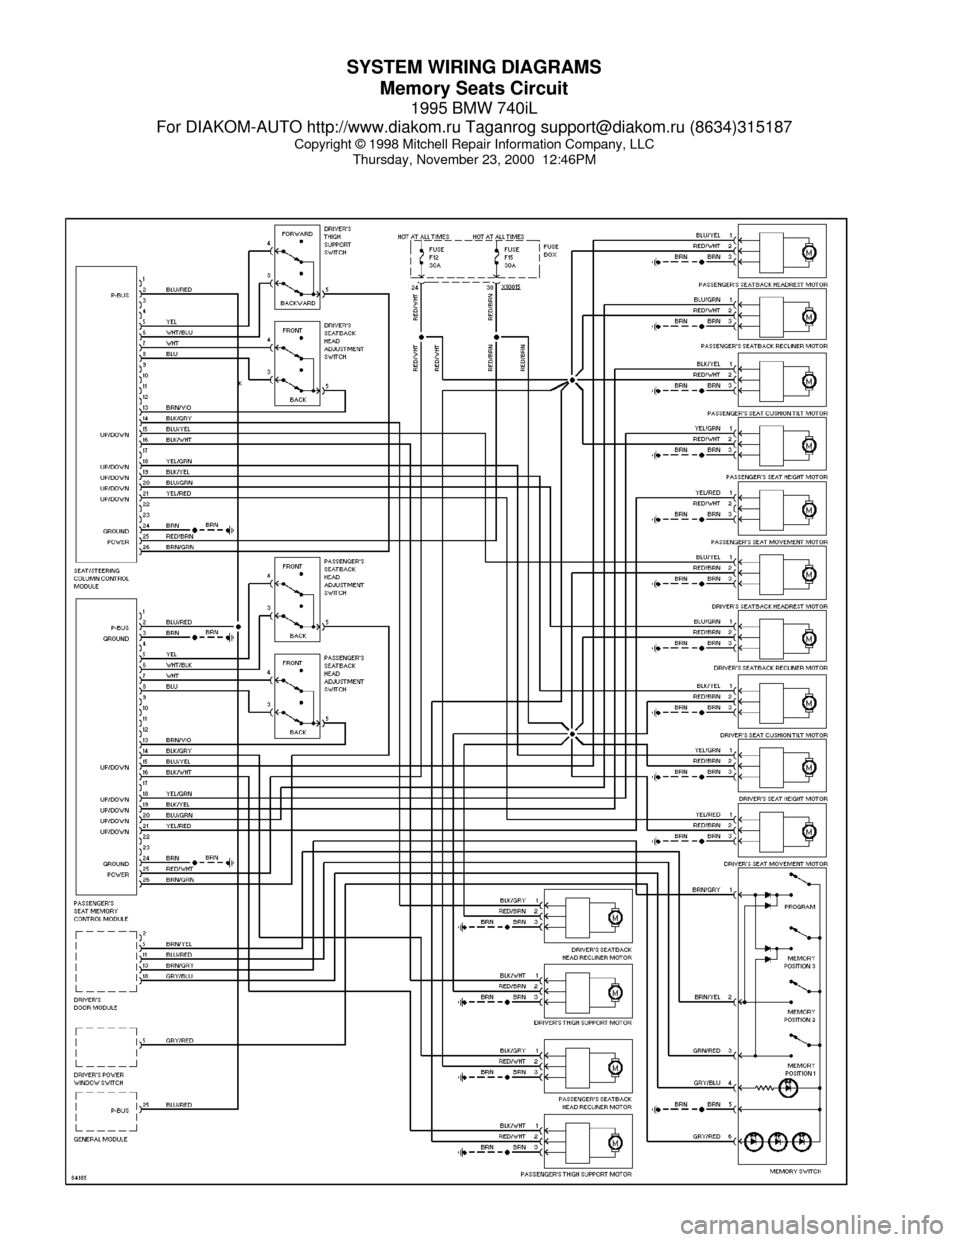 1998 Bmw 740il Parts Diagram - New Wiring Diagram blame-area -  blame-area.stonetales.it | 1998 Bmw 750il Wiring Diagram |  | blame-area.stonetales.it